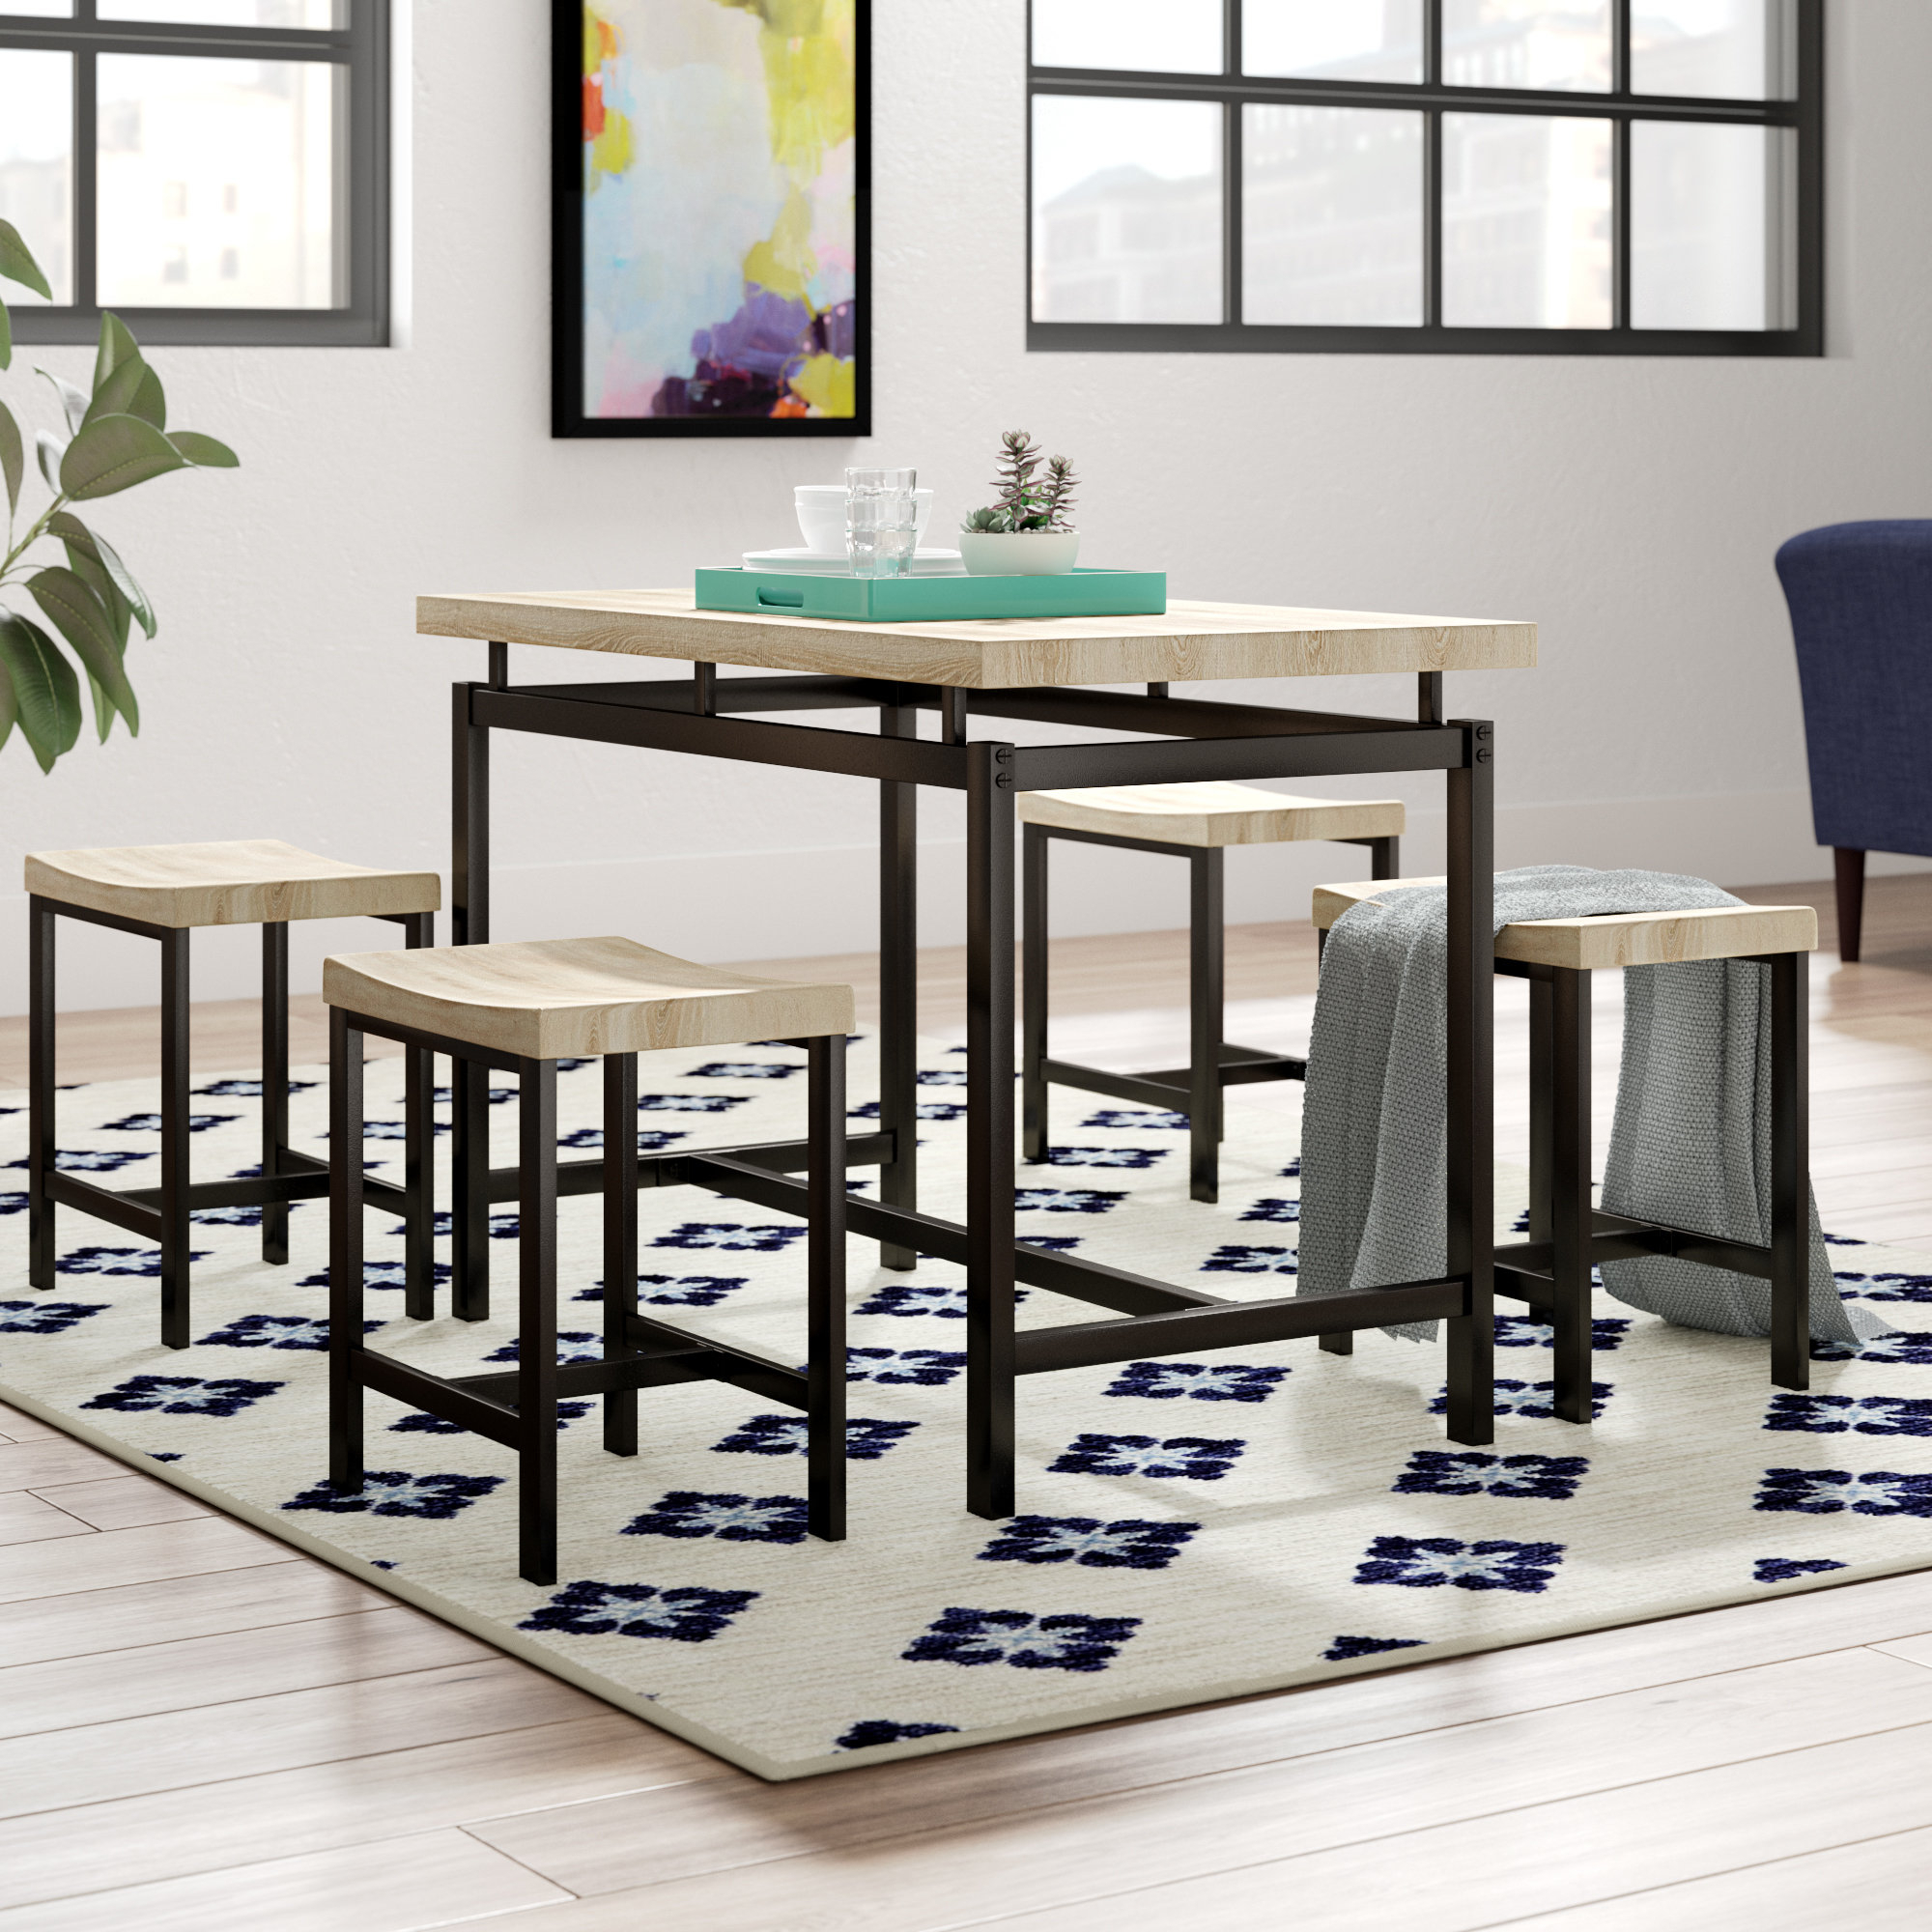 Wayfair With Regard To Widely Used Presson 3 Piece Counter Height Dining Sets (View 20 of 25)